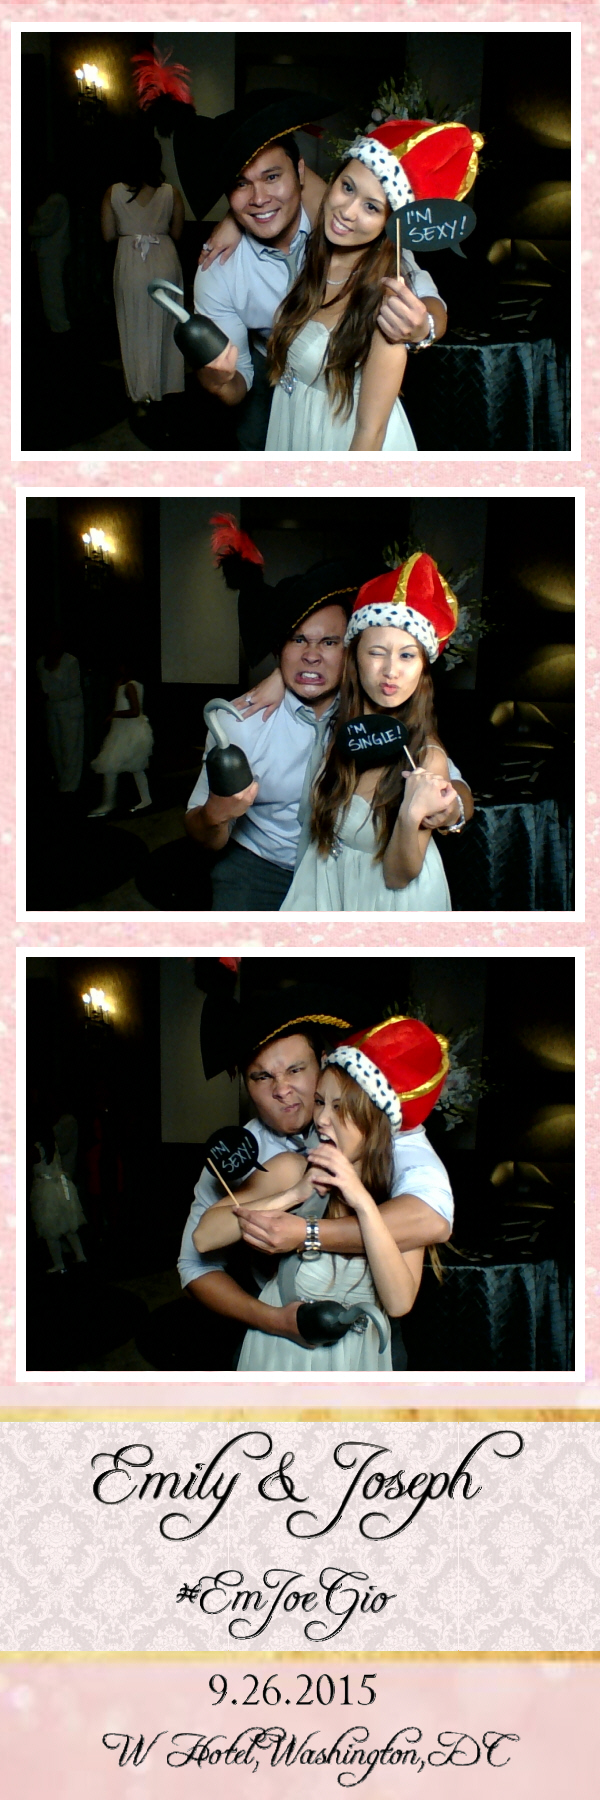 Guest House Events Photo Booth E&J (45).jpg